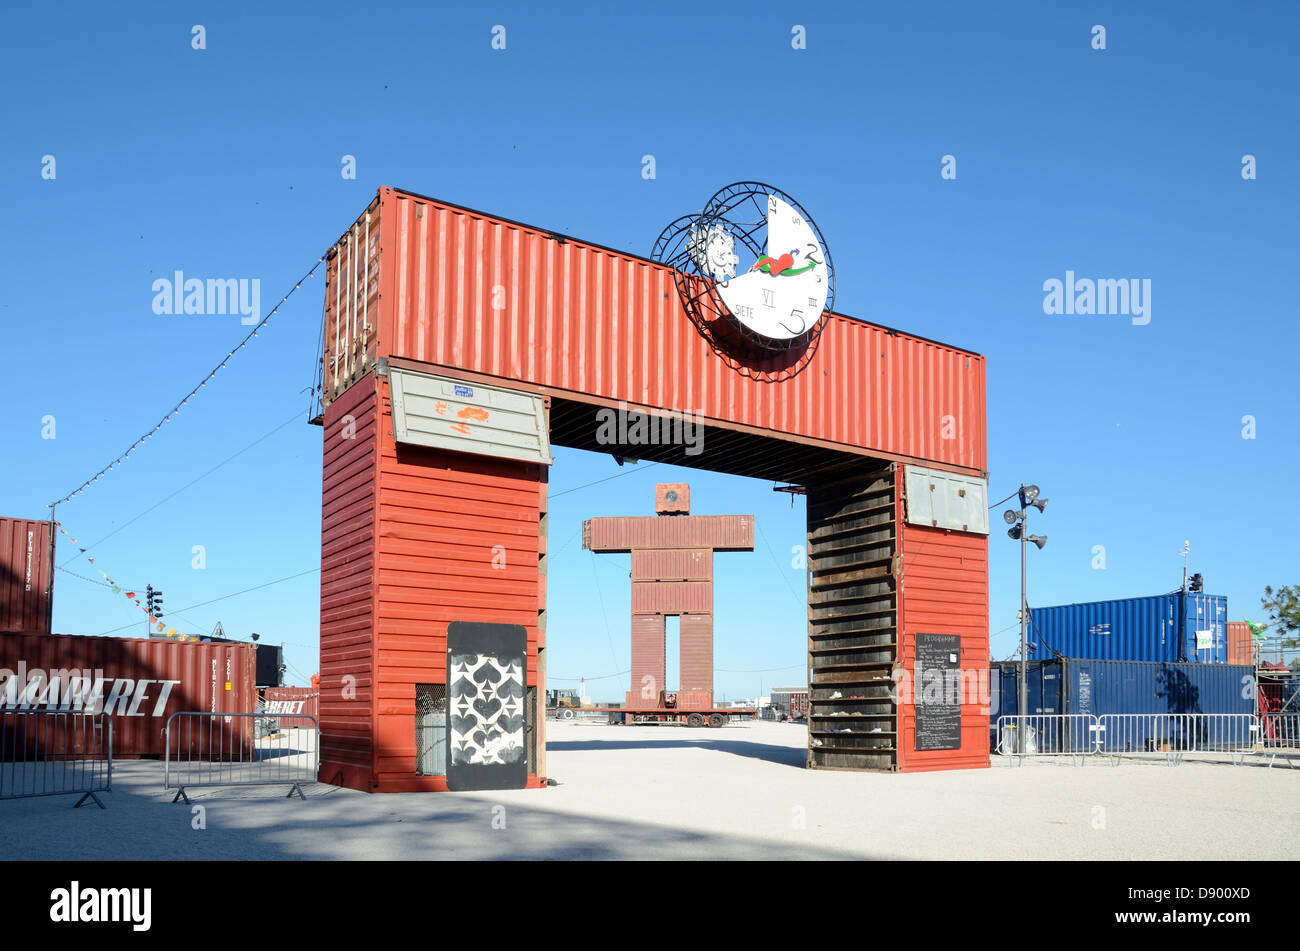 Shipping Containers Entrance Gateway Marseille France - Stock Image